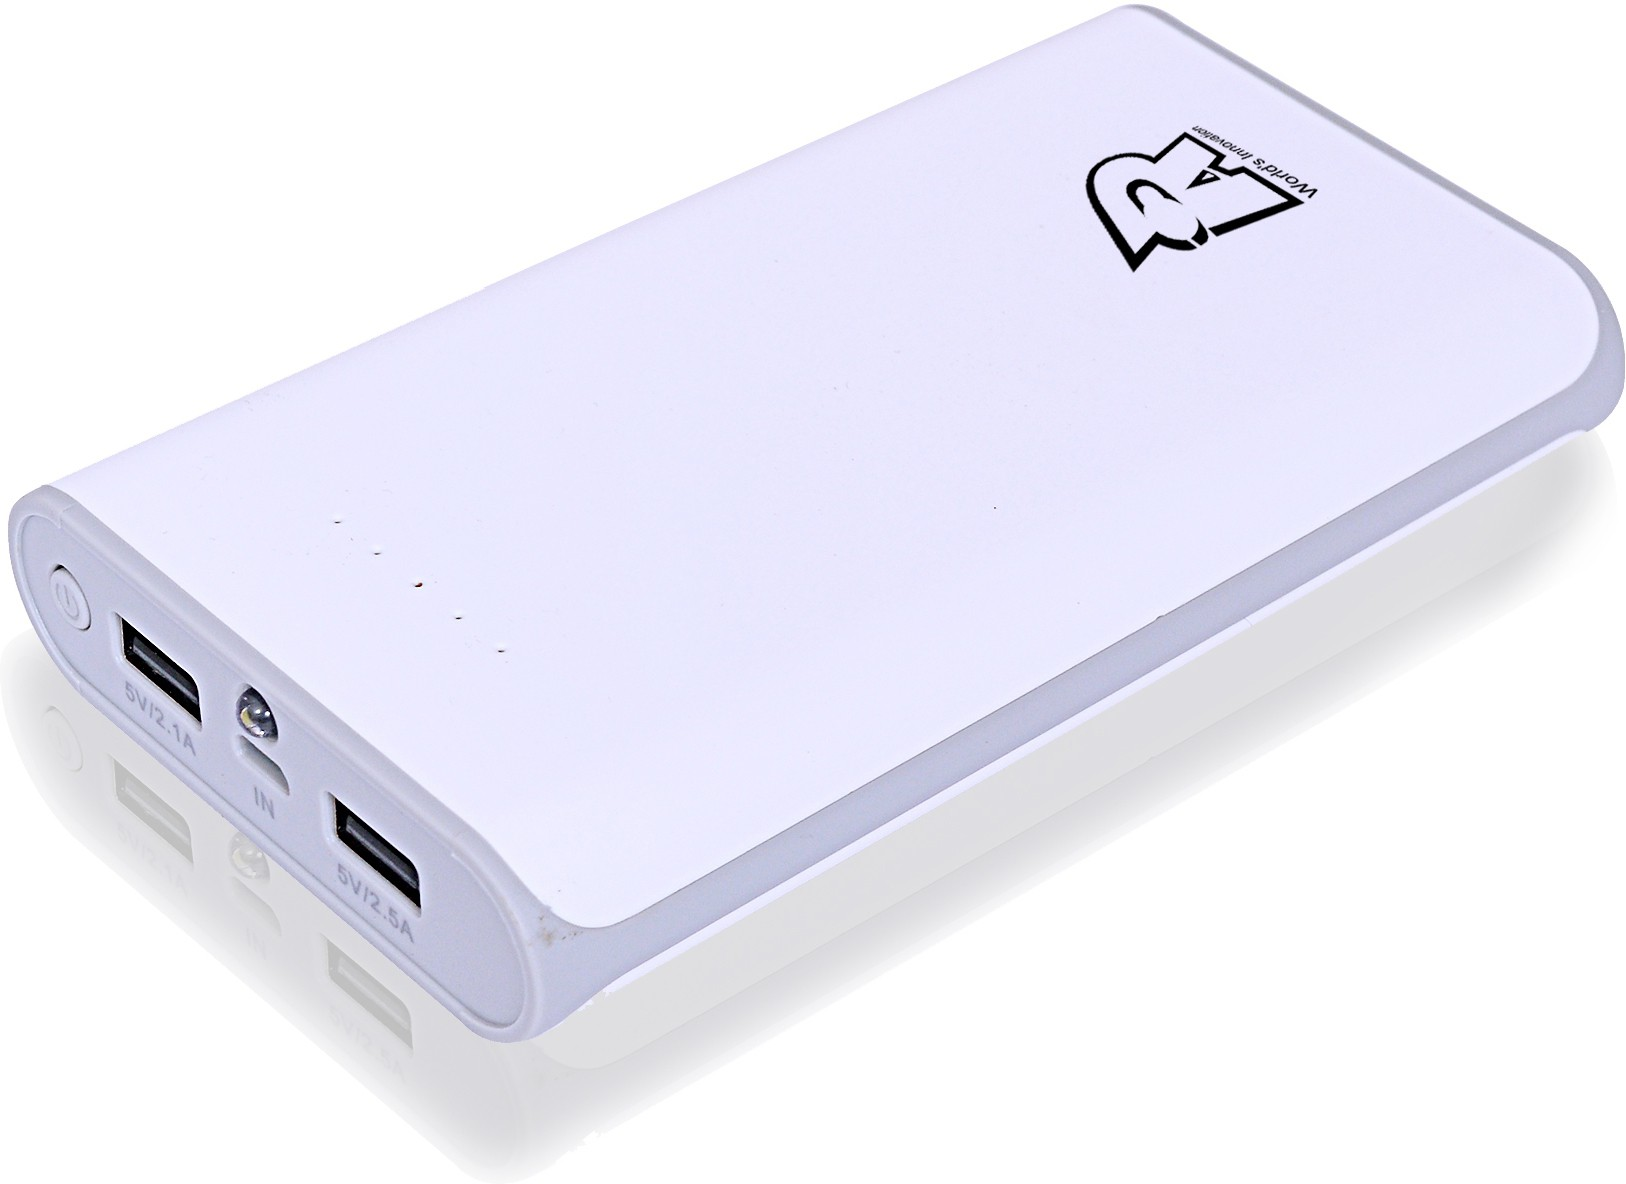 Rotry RI-1560 15600 mAh Power Bank(White/Grey, Lithium-ion)